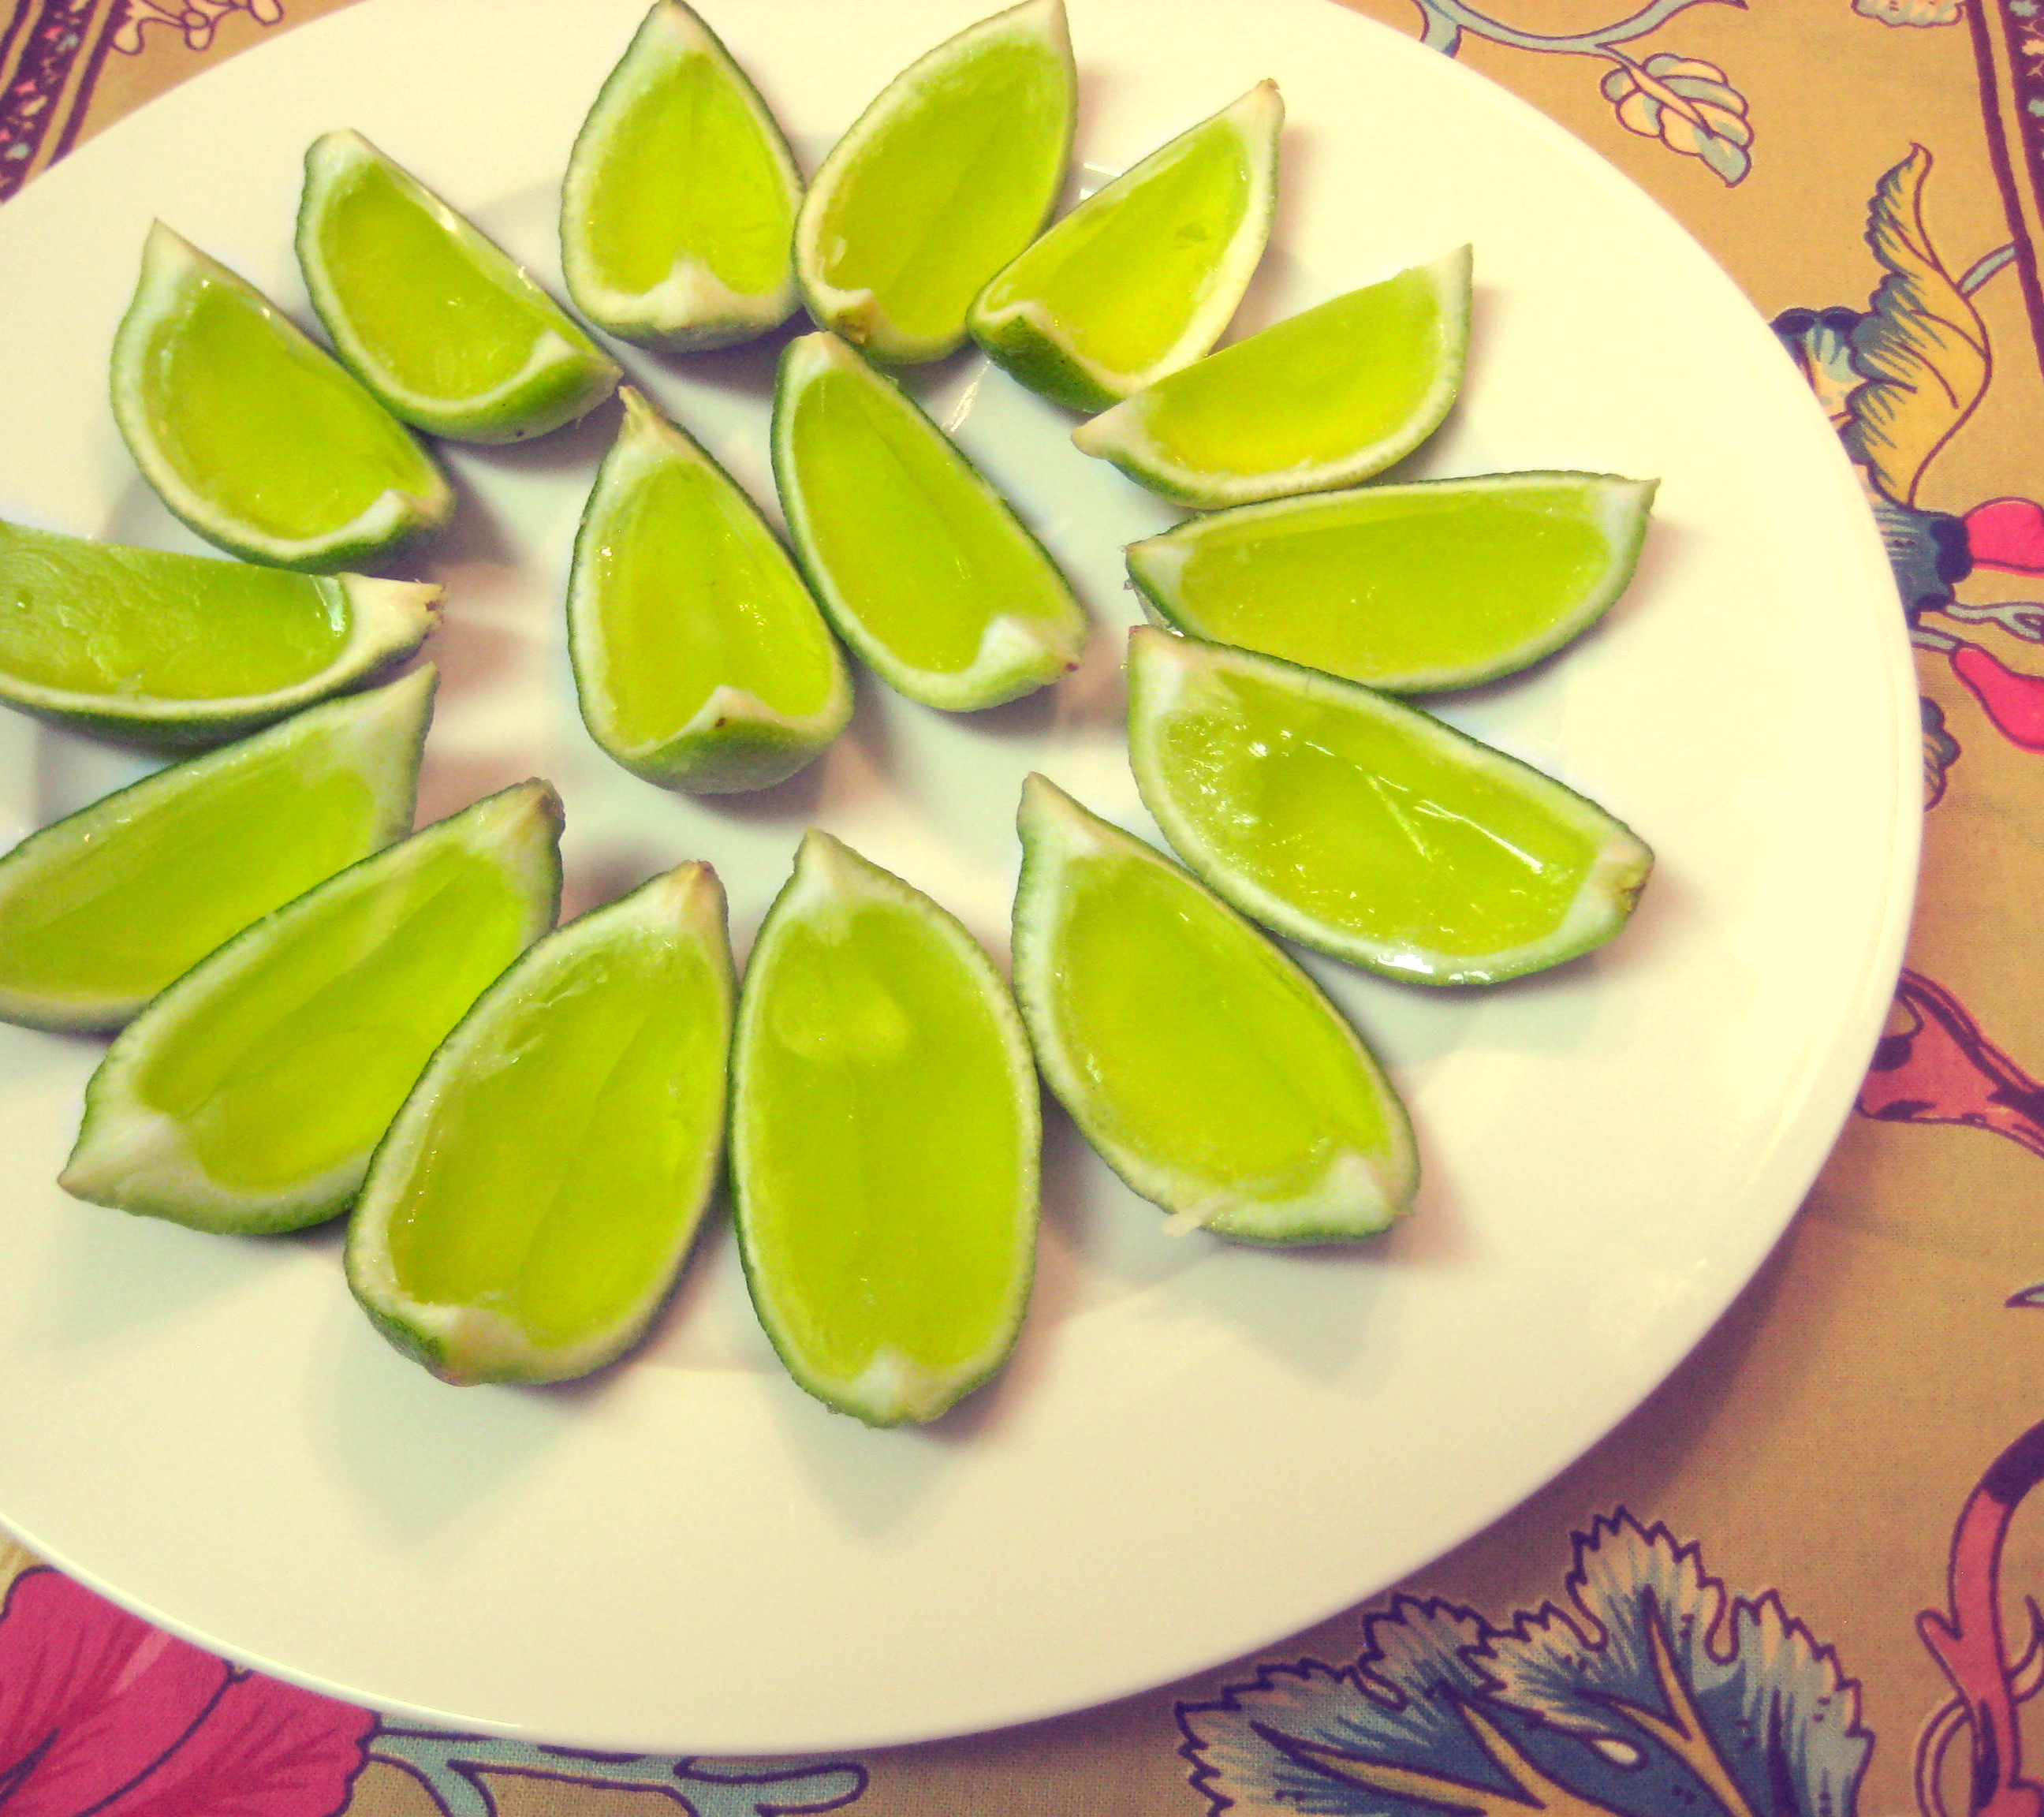 Fruit Jello Shots - Limes